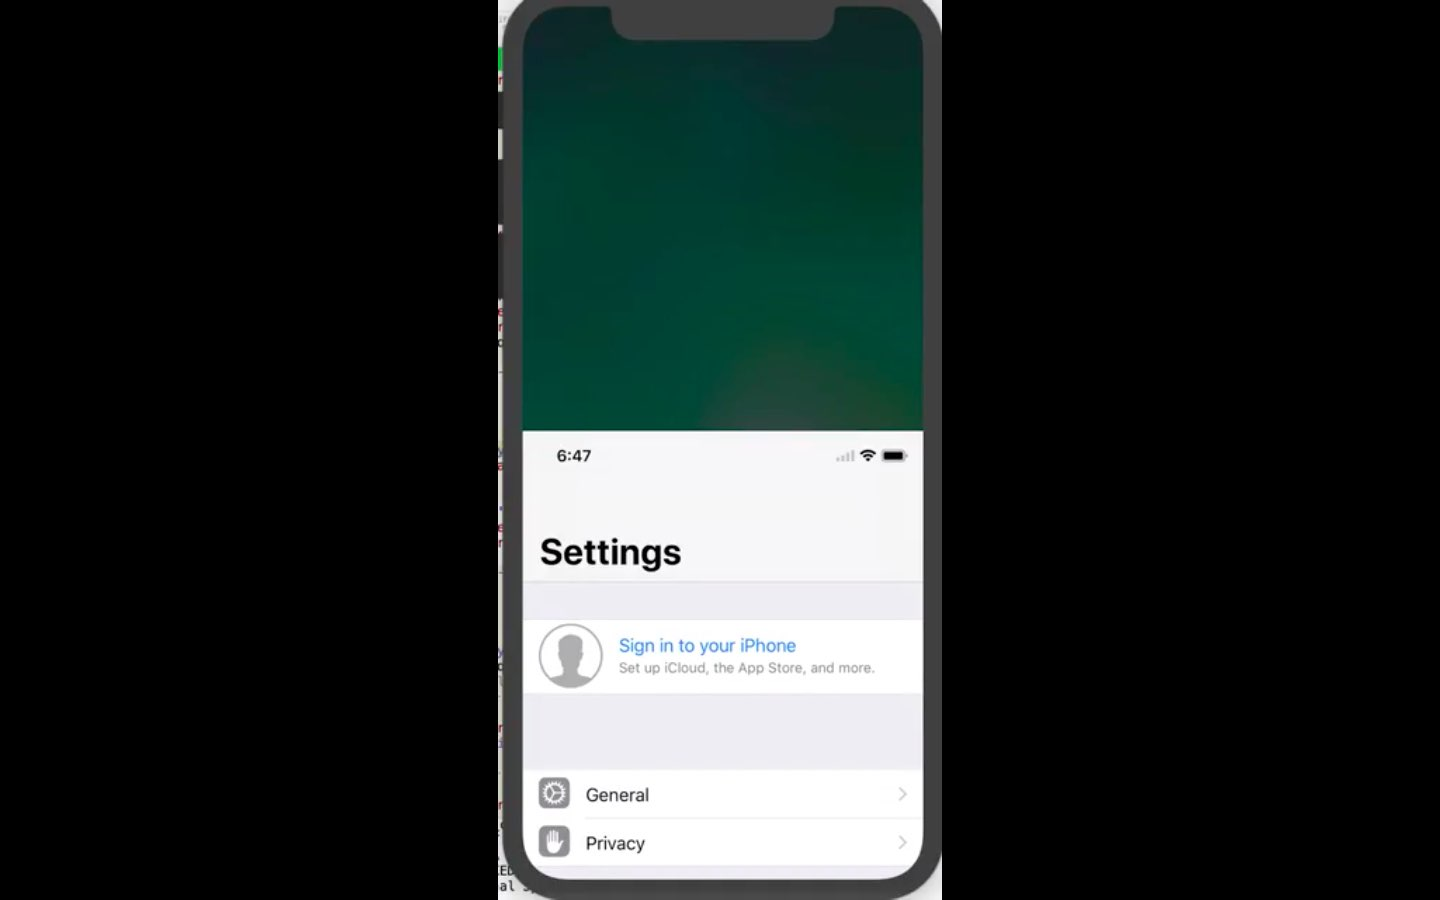 Looks like Apple is working on Reachability support for iPhone X